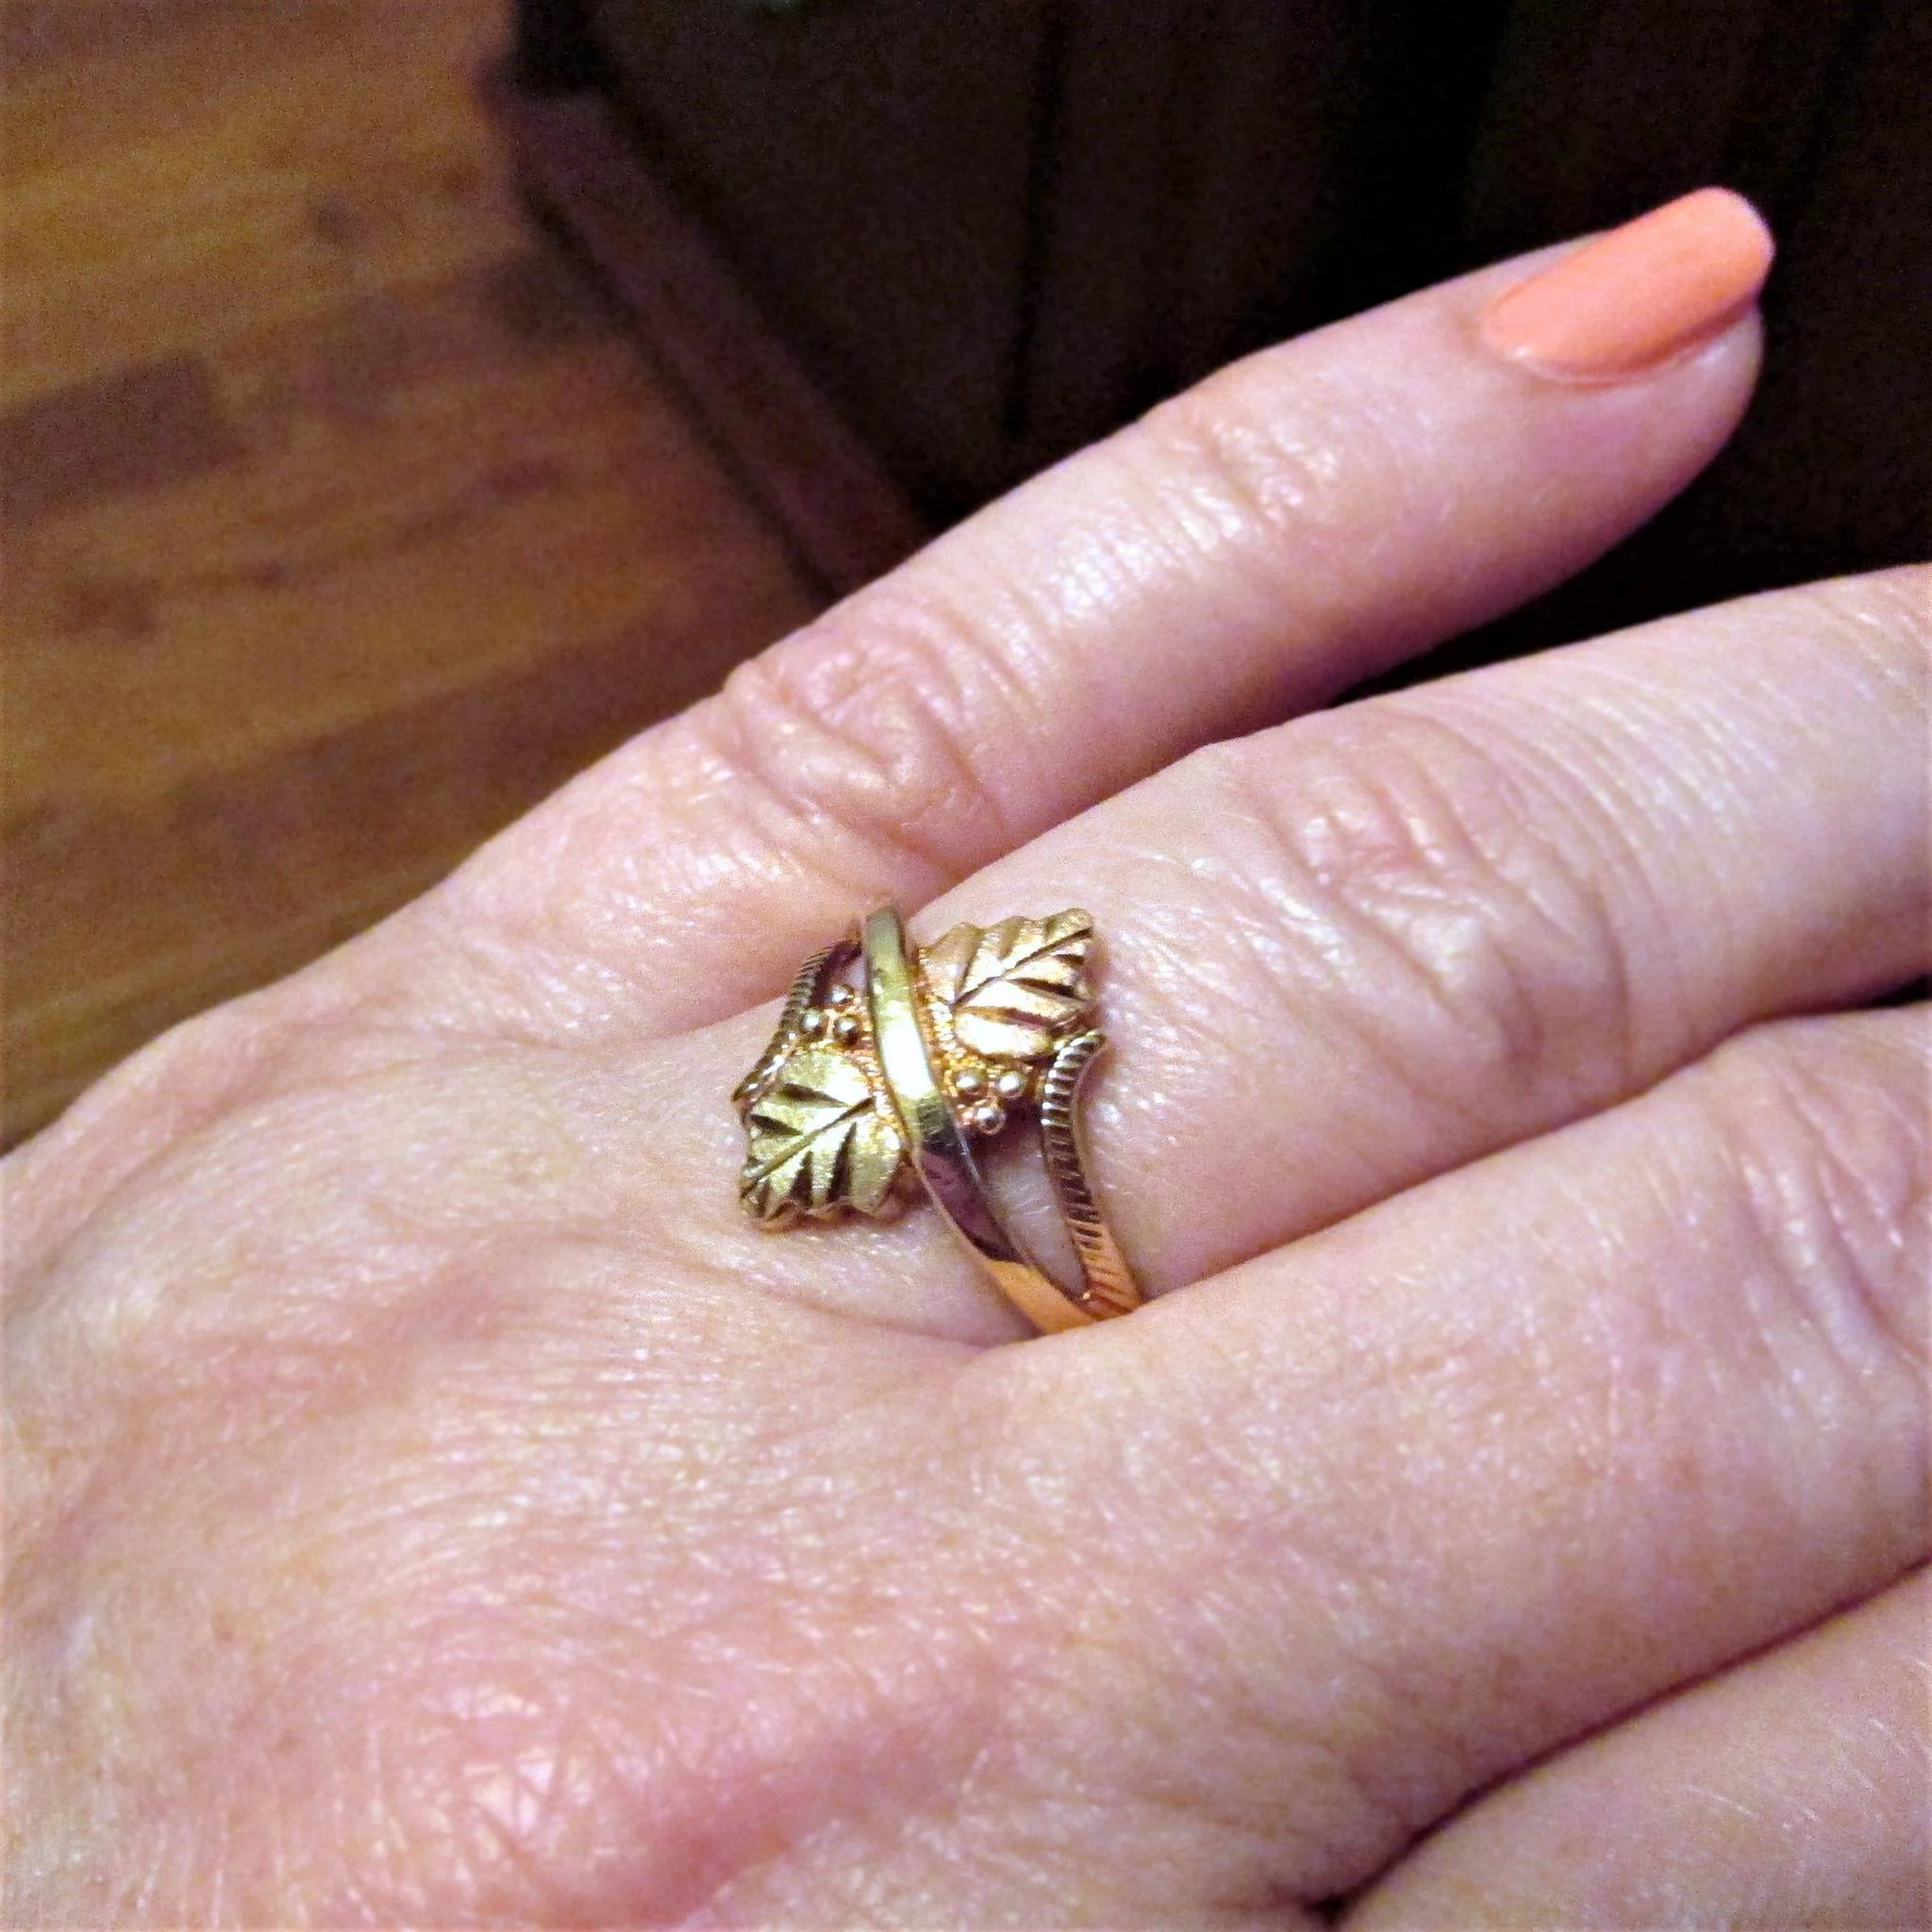 10K Gold Coleman Company Black Hills Gold Ring Size 8 : The Strands ...